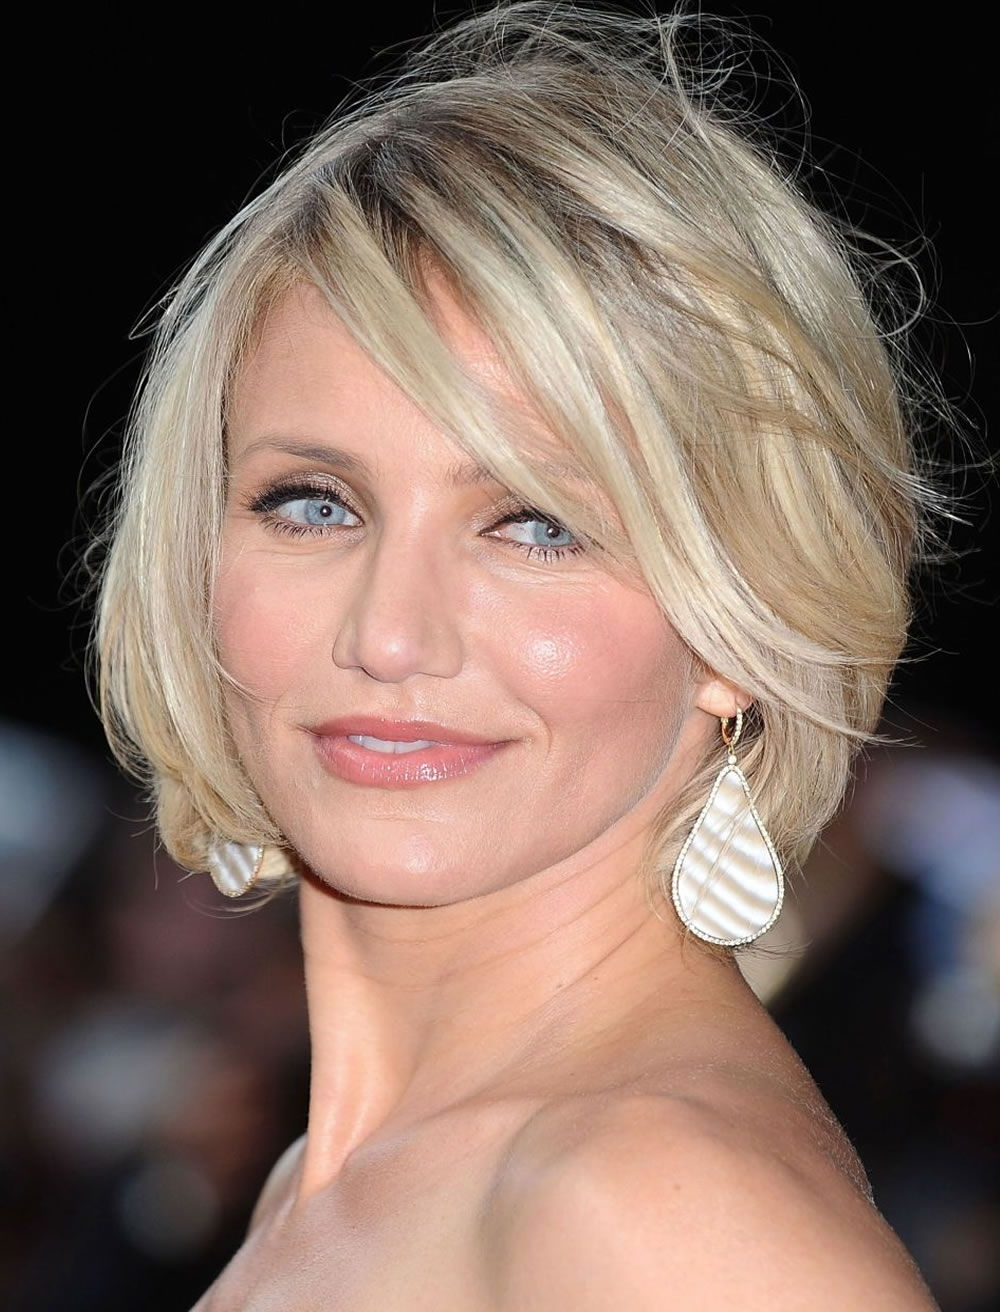 Bob Hairstyles For Older Women Over 40 To 60 Years 2017 2018 With Throughout Stylish Short Haircuts For Women Over  (View 4 of 25)